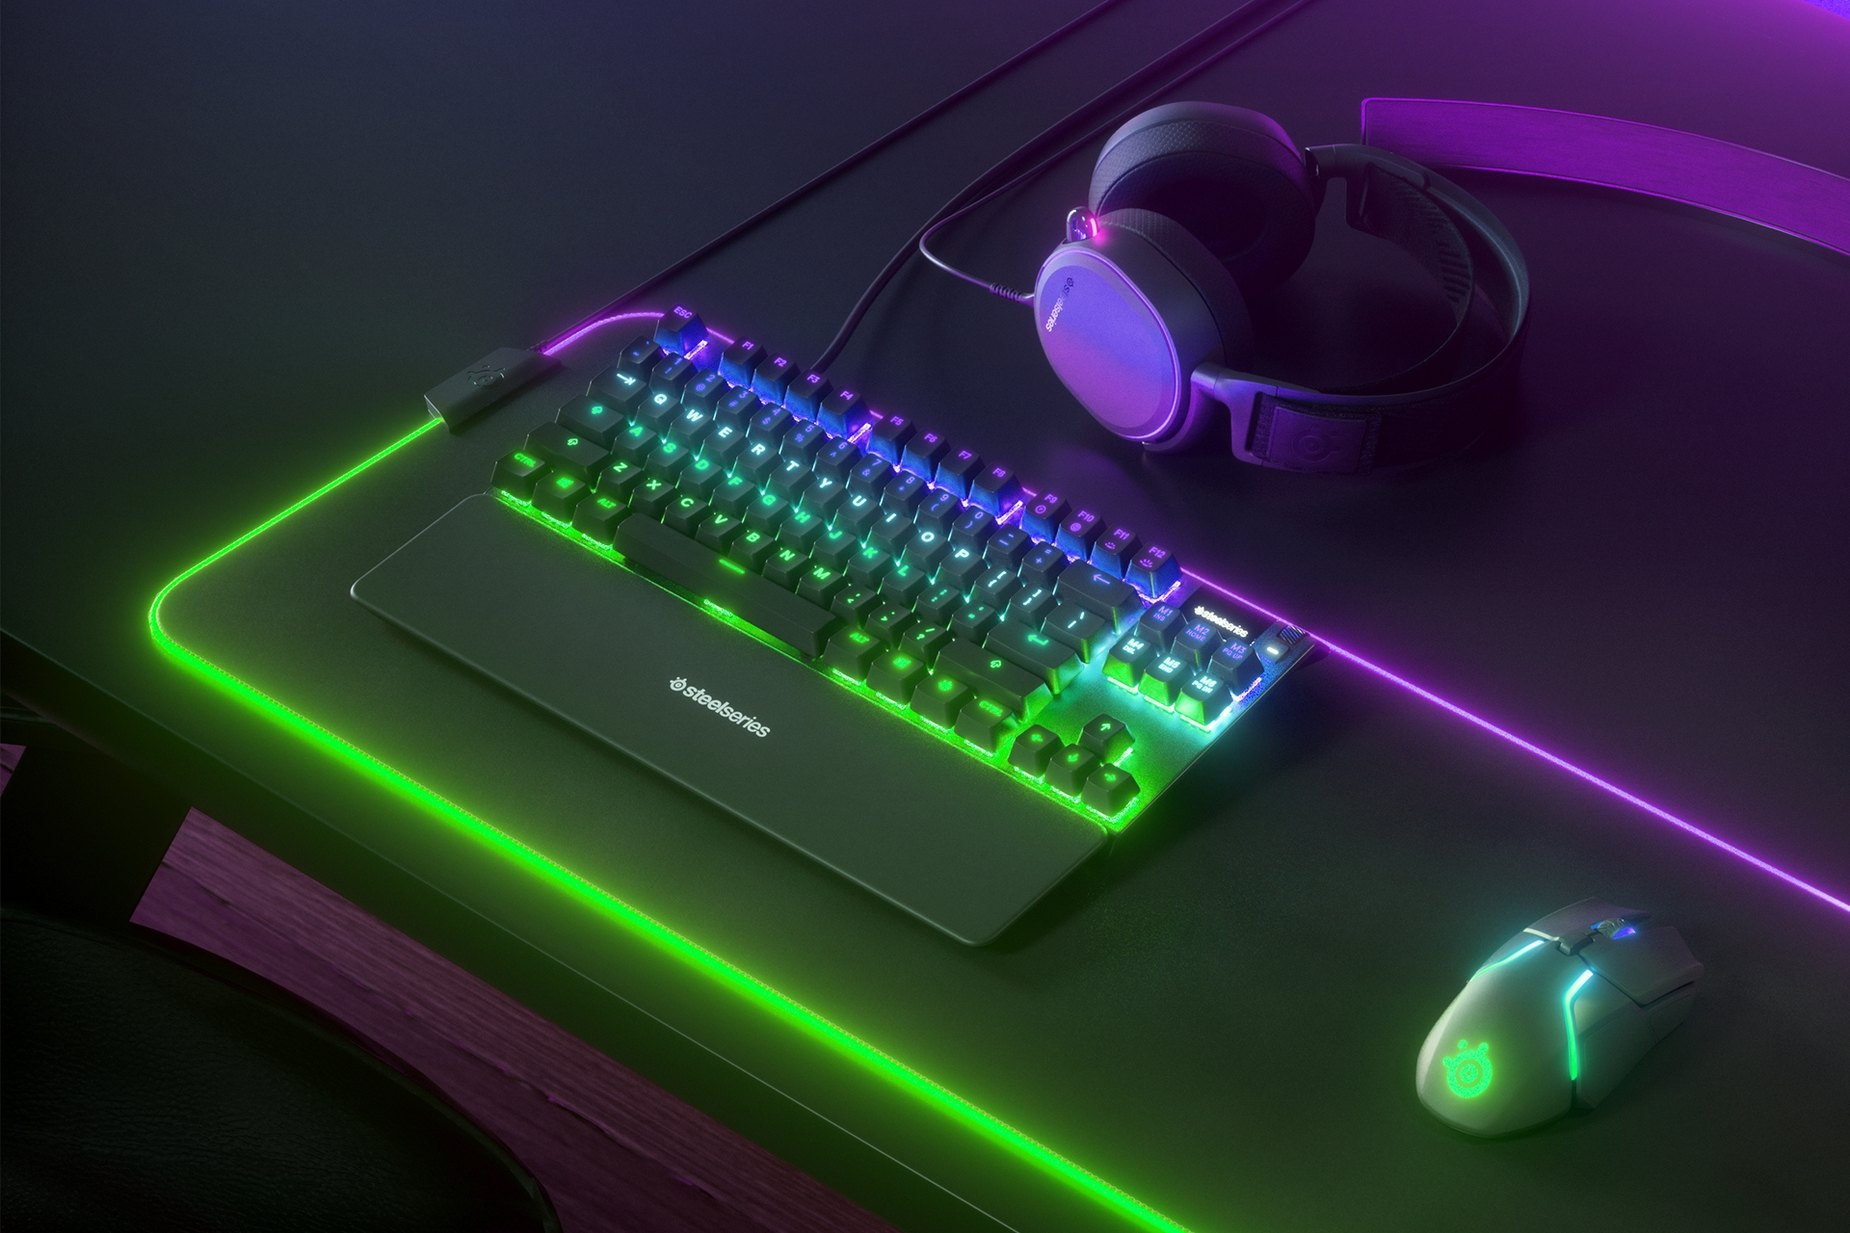 Немецкий - Apex Pro TKL gaming keyboard on a desk with a gaming mouse, both on top of a large mousepad and a SteelSeries gaming headset next to them